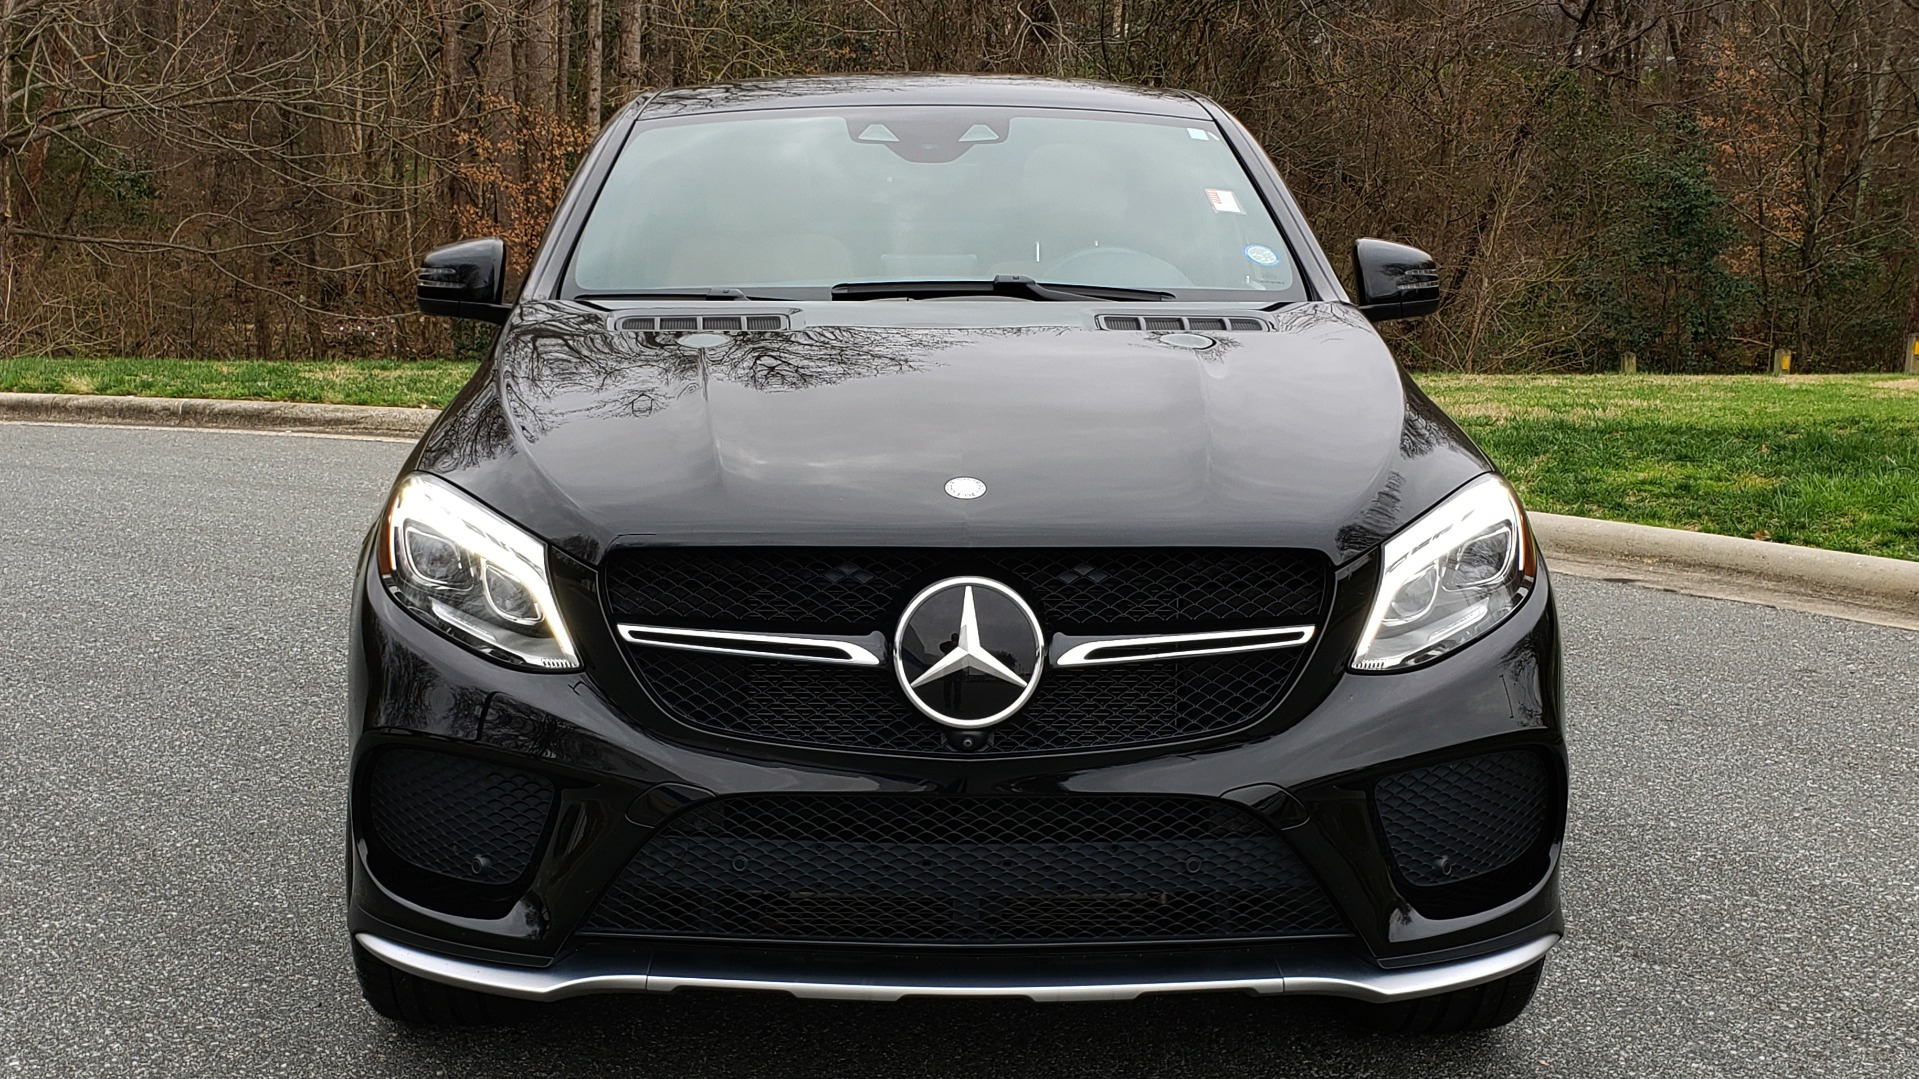 Used 2016 Mercedes-Benz GLE 450 AMG / AWD / PREM PKG / PARK ASST / DRVR ASST / SUNROOF for sale Sold at Formula Imports in Charlotte NC 28227 24